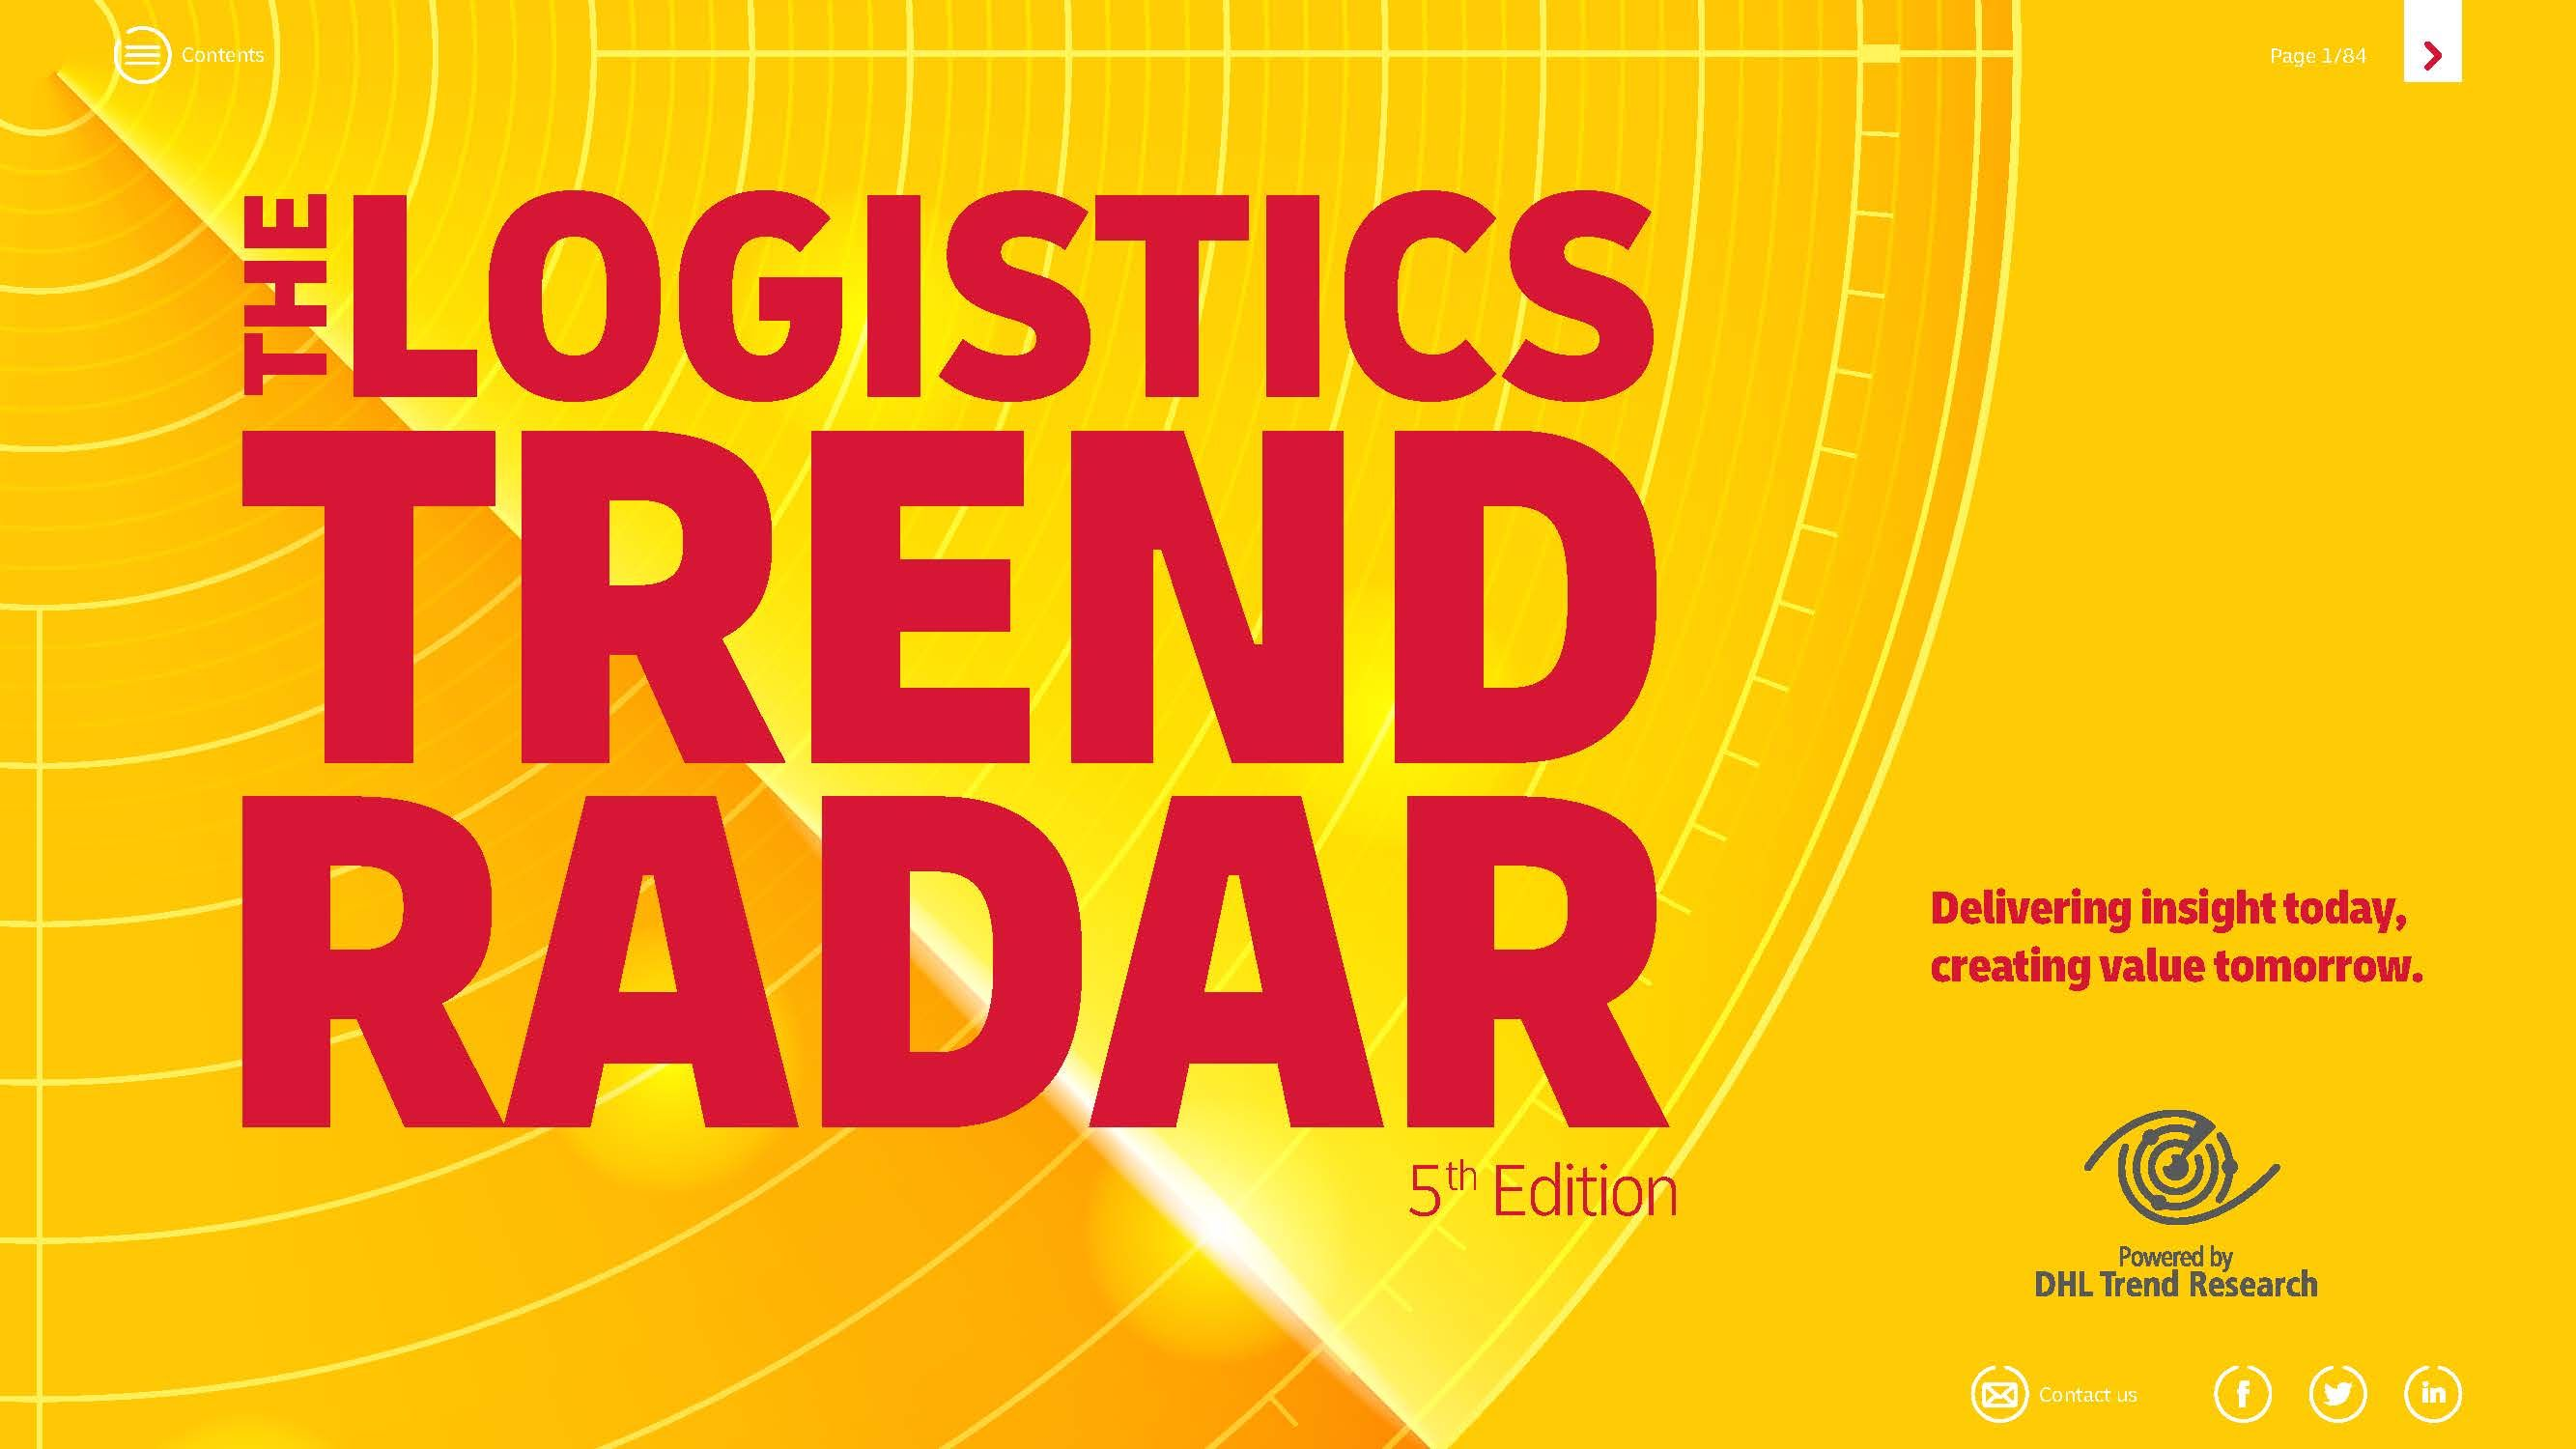 2020物流趋势报告DHL The logistics trend radar-5thedition(附下载)